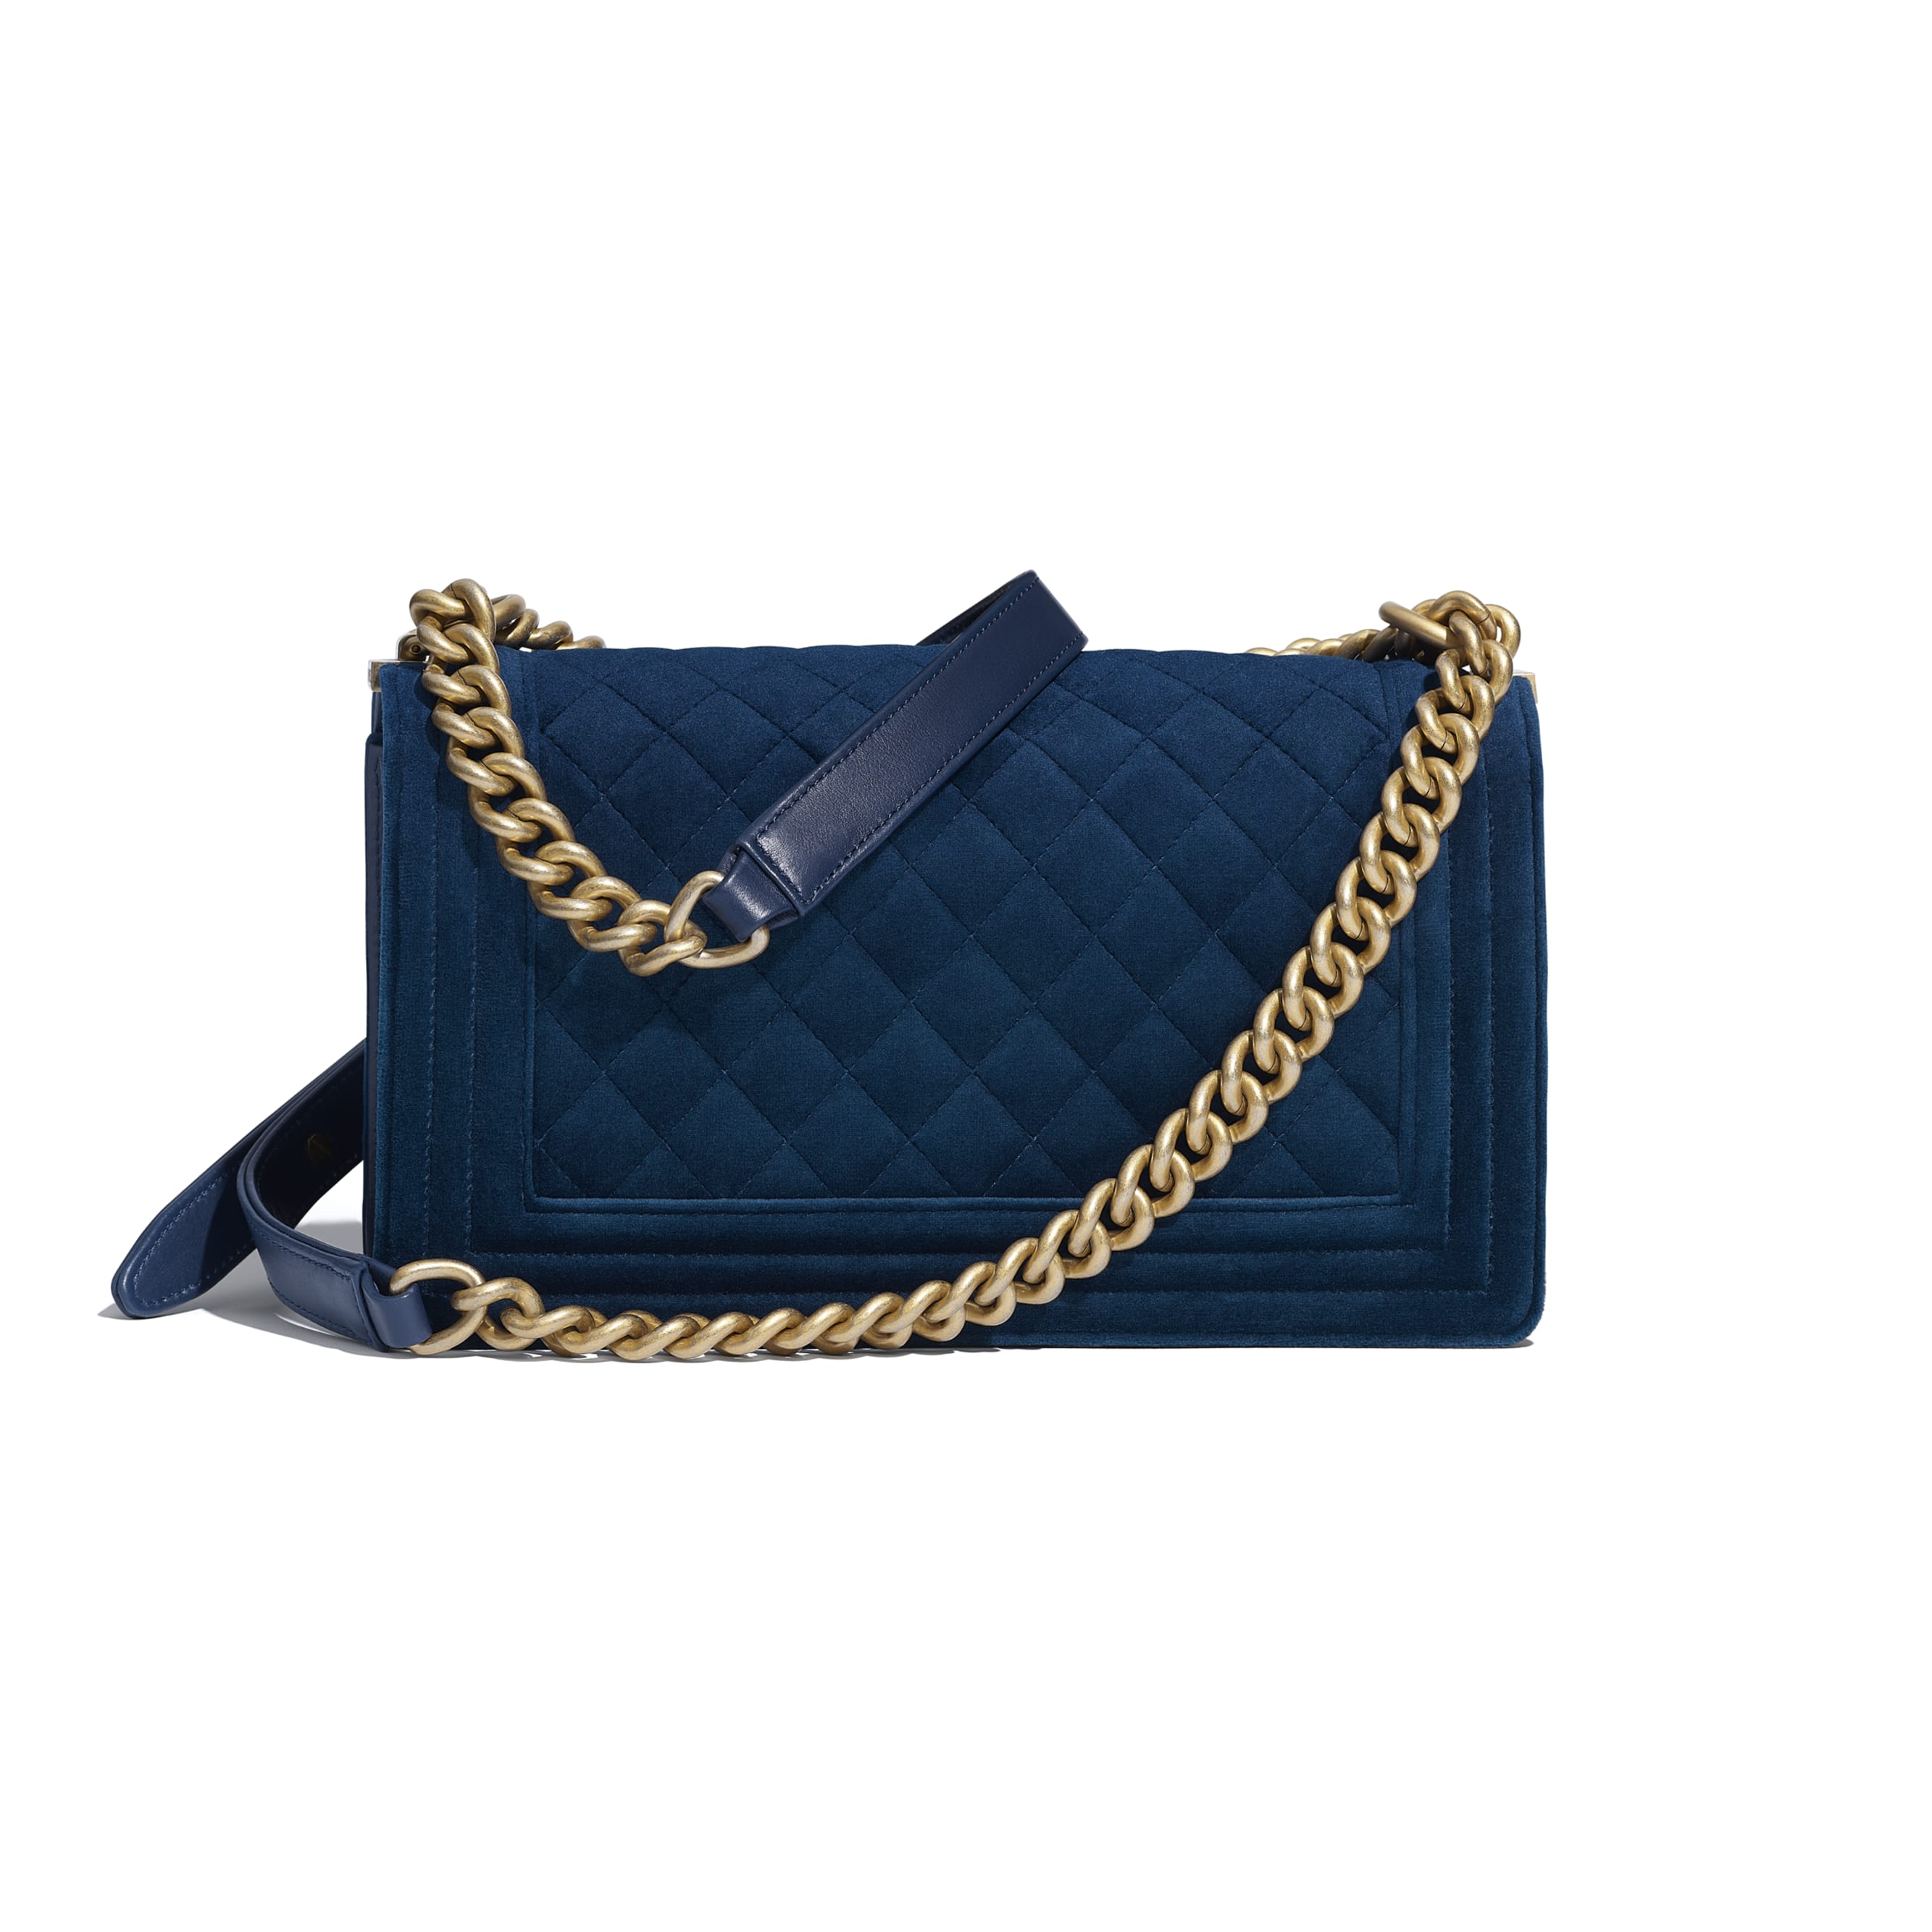 BOY CHANEL Handbag - Navy Blue - Velvet & Gold Metal - Alternative view - see standard sized version